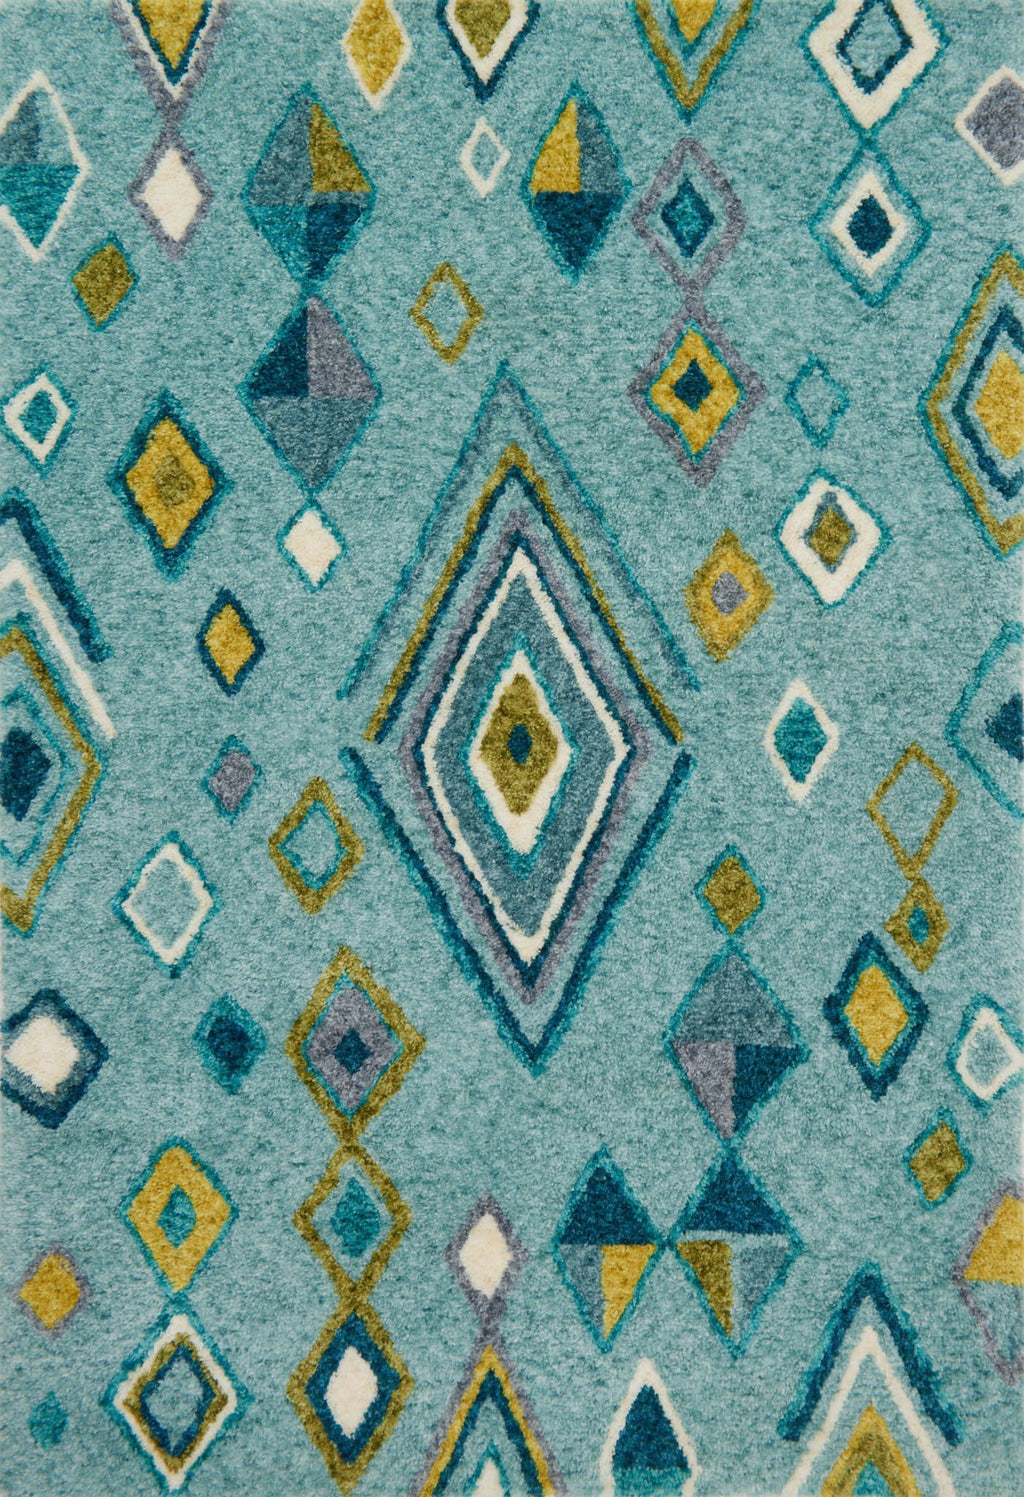 KALLIOPE Collection Rug  in  AQUA / TEAL Blue Small Hand-Woven Polyester